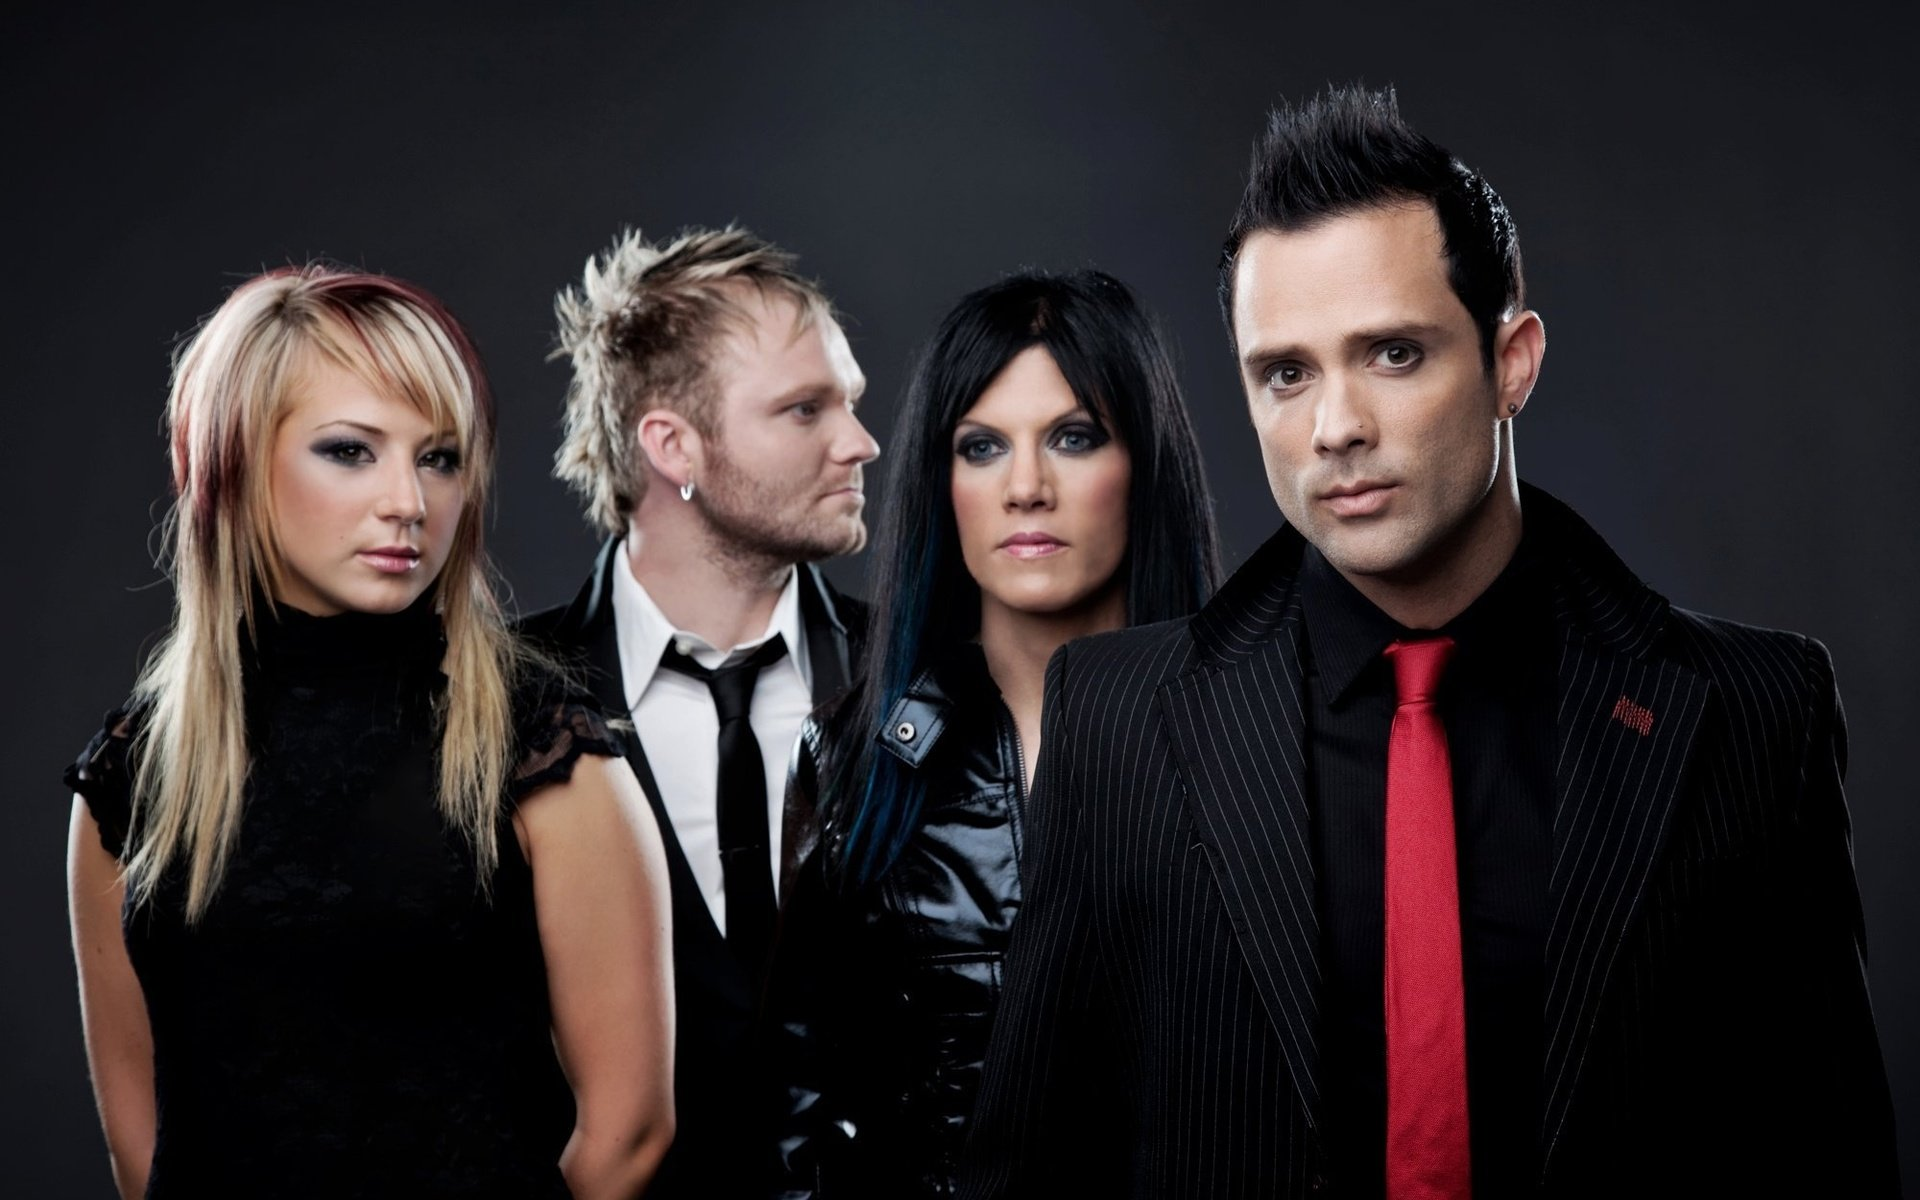 Awesome Skillet Free Wallpaper ID350663 For Hd 1920x1200 Desktop